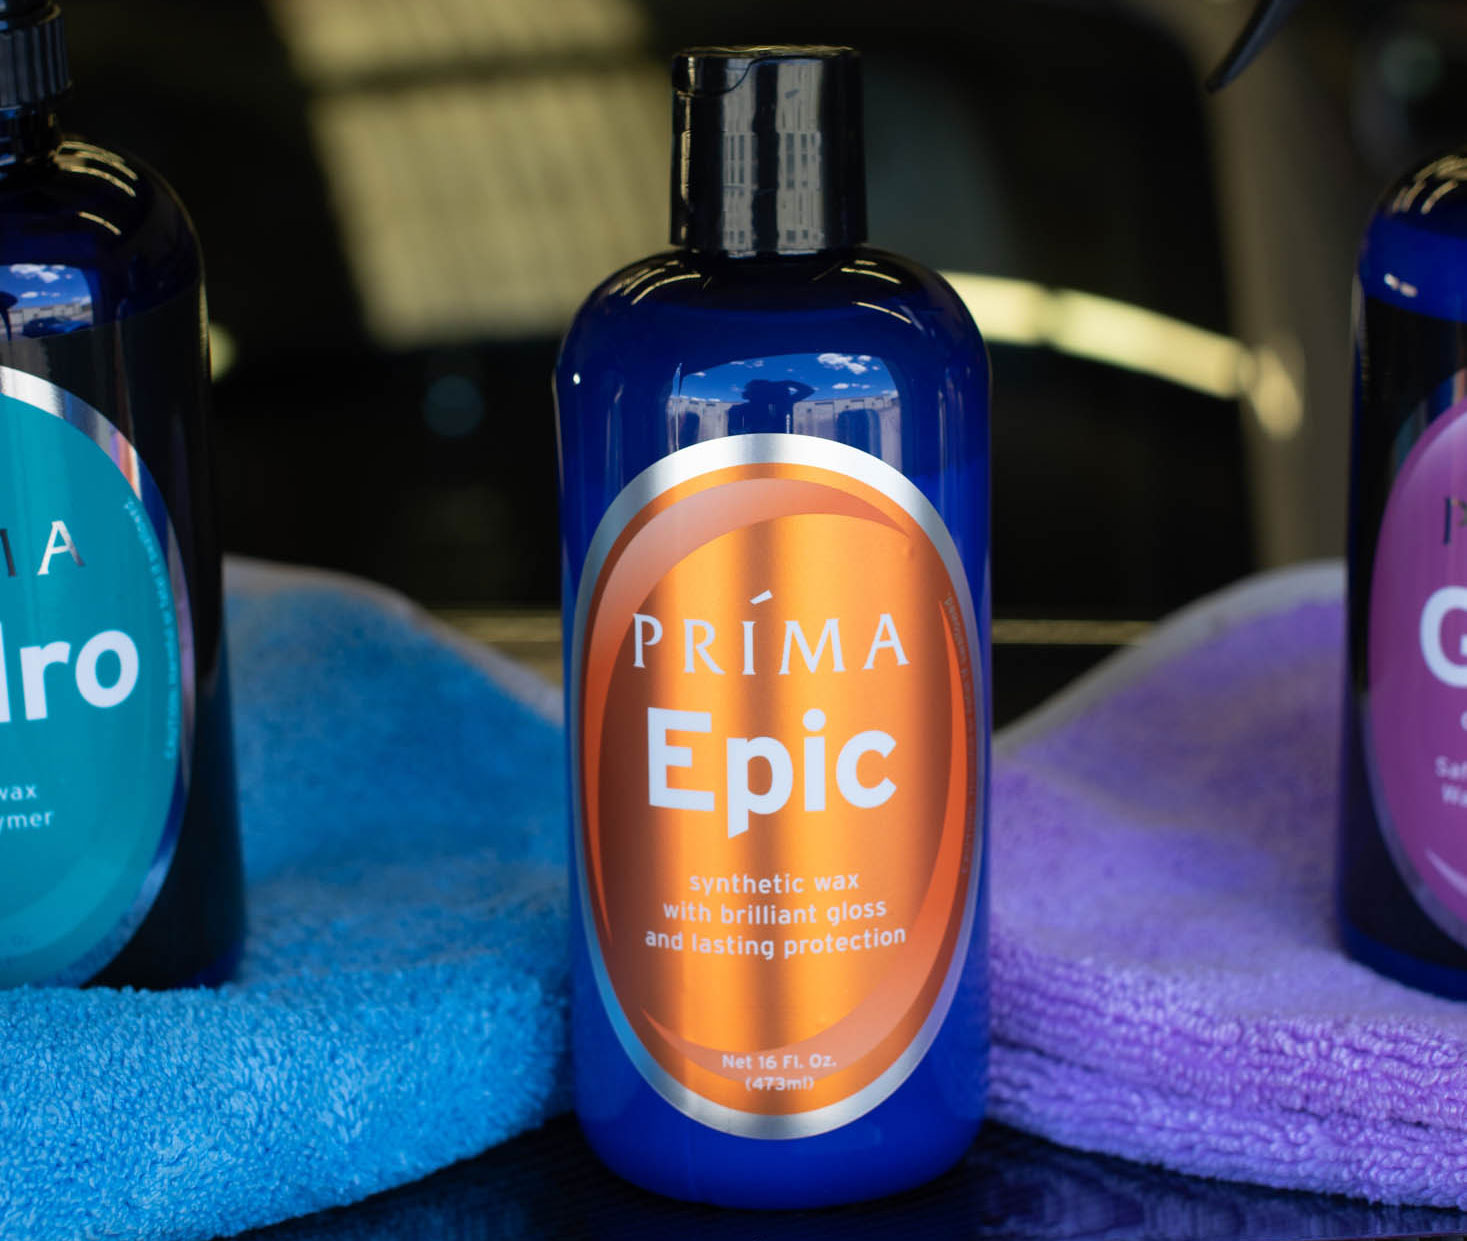 A bottle of Prima Epic synthetic wax